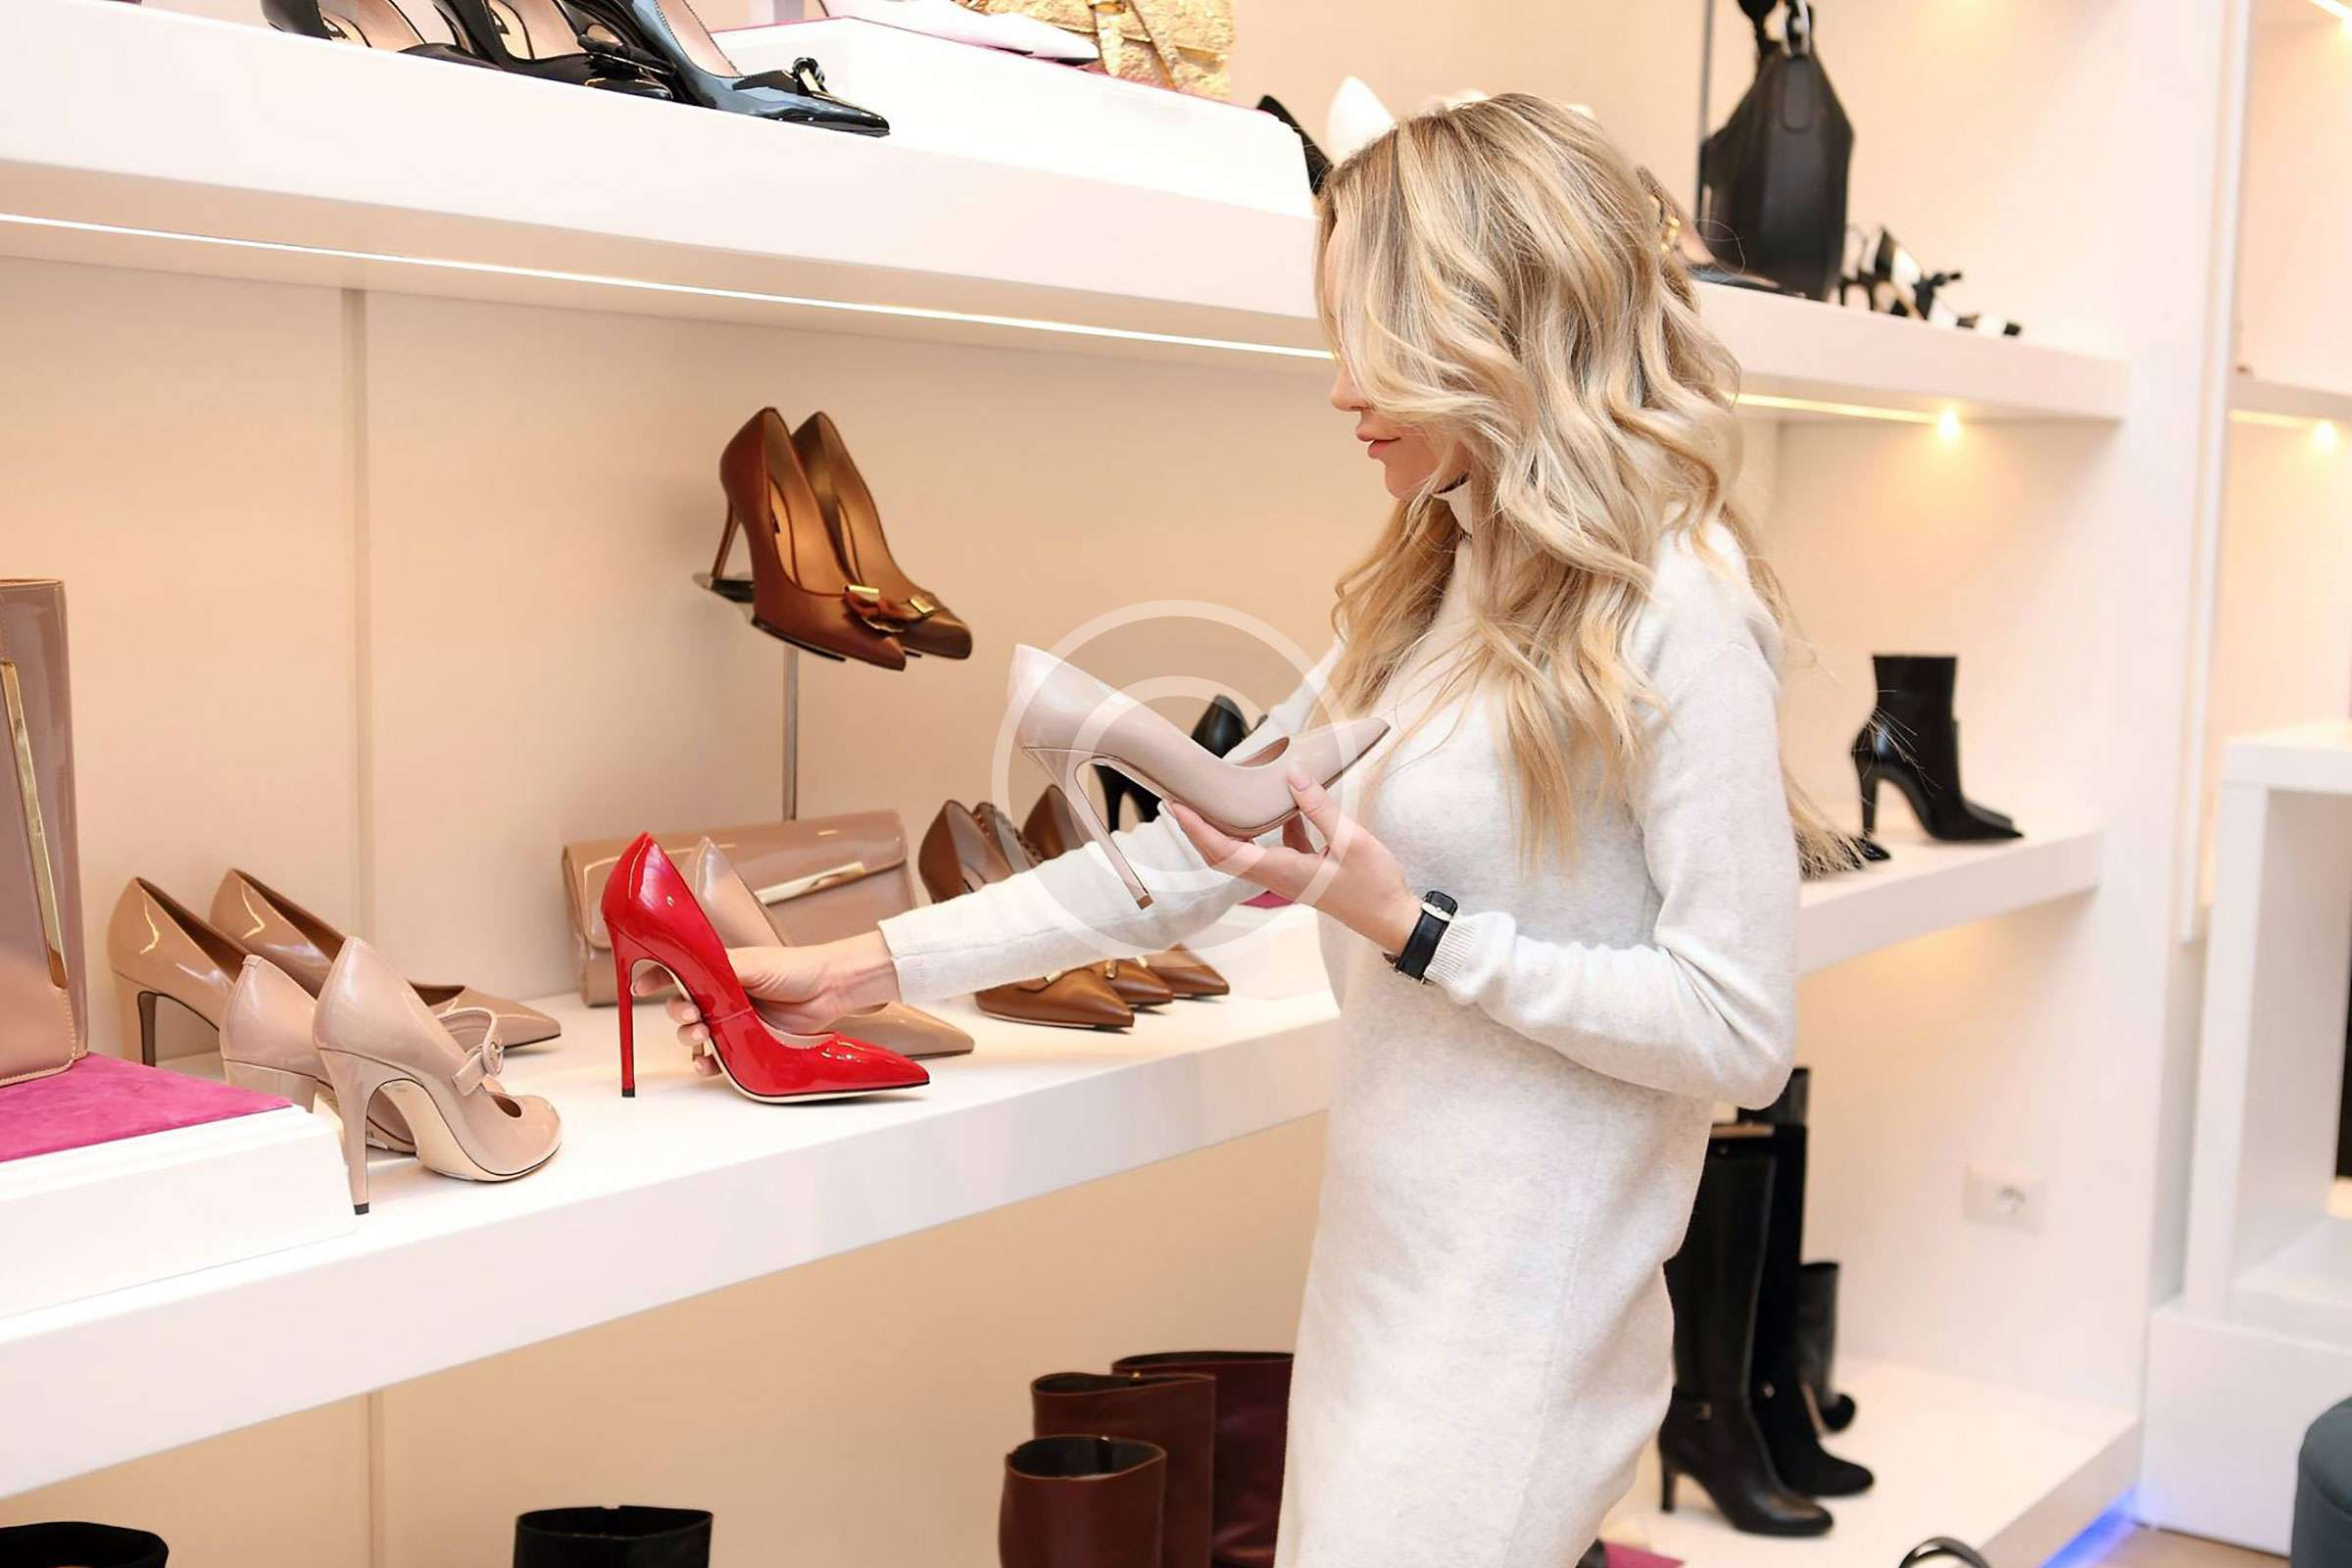 How To Pick The Right Handbag For Lifestyle